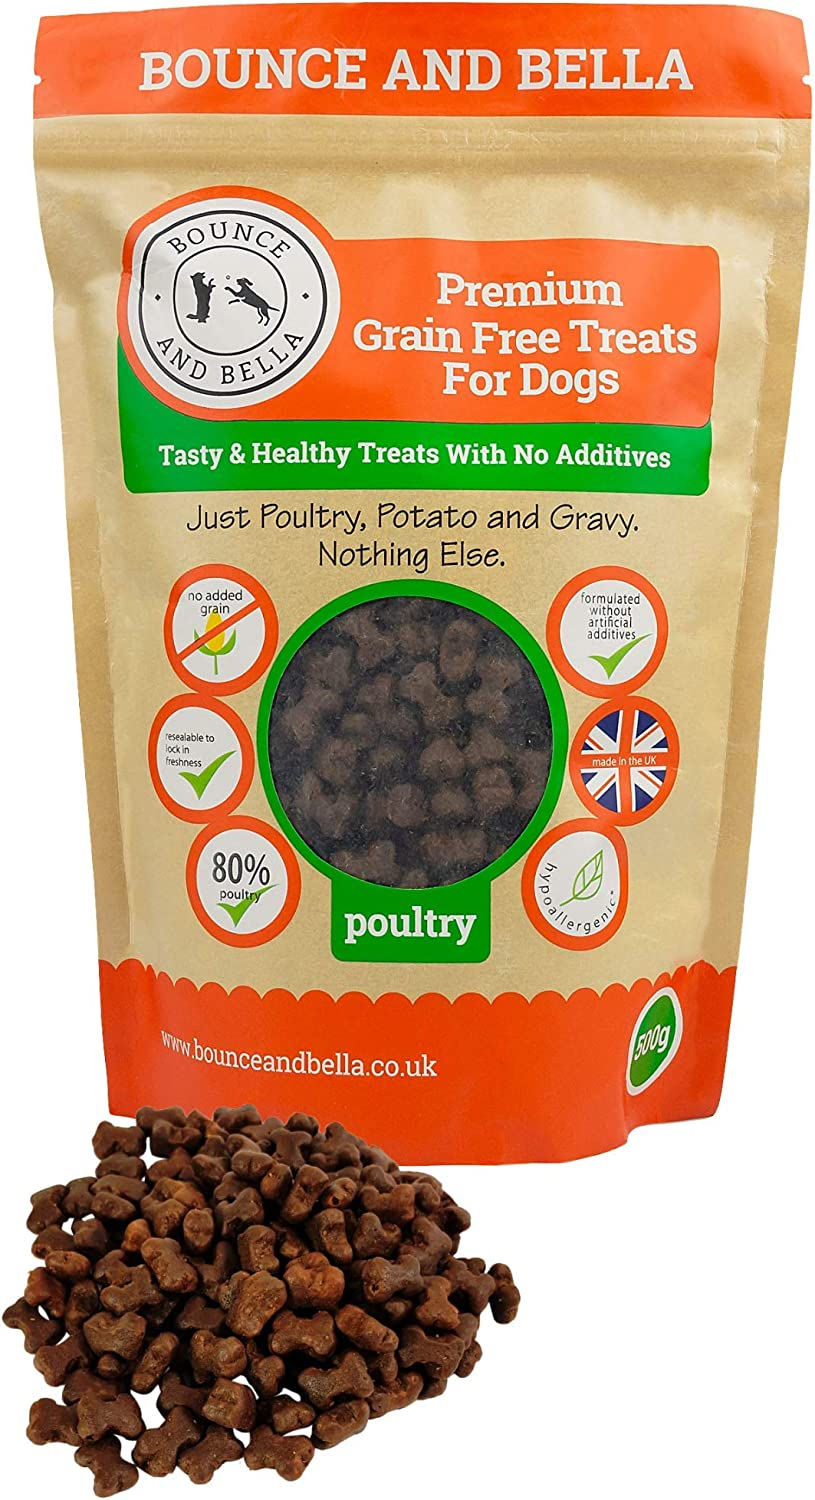 Bounce And Bella Grain Free Dog Training Treats 800 Tasty Healthy Treat Pack 80 Fresh Poultry Meat 20 Potatoes Gravy Hypoallergenic